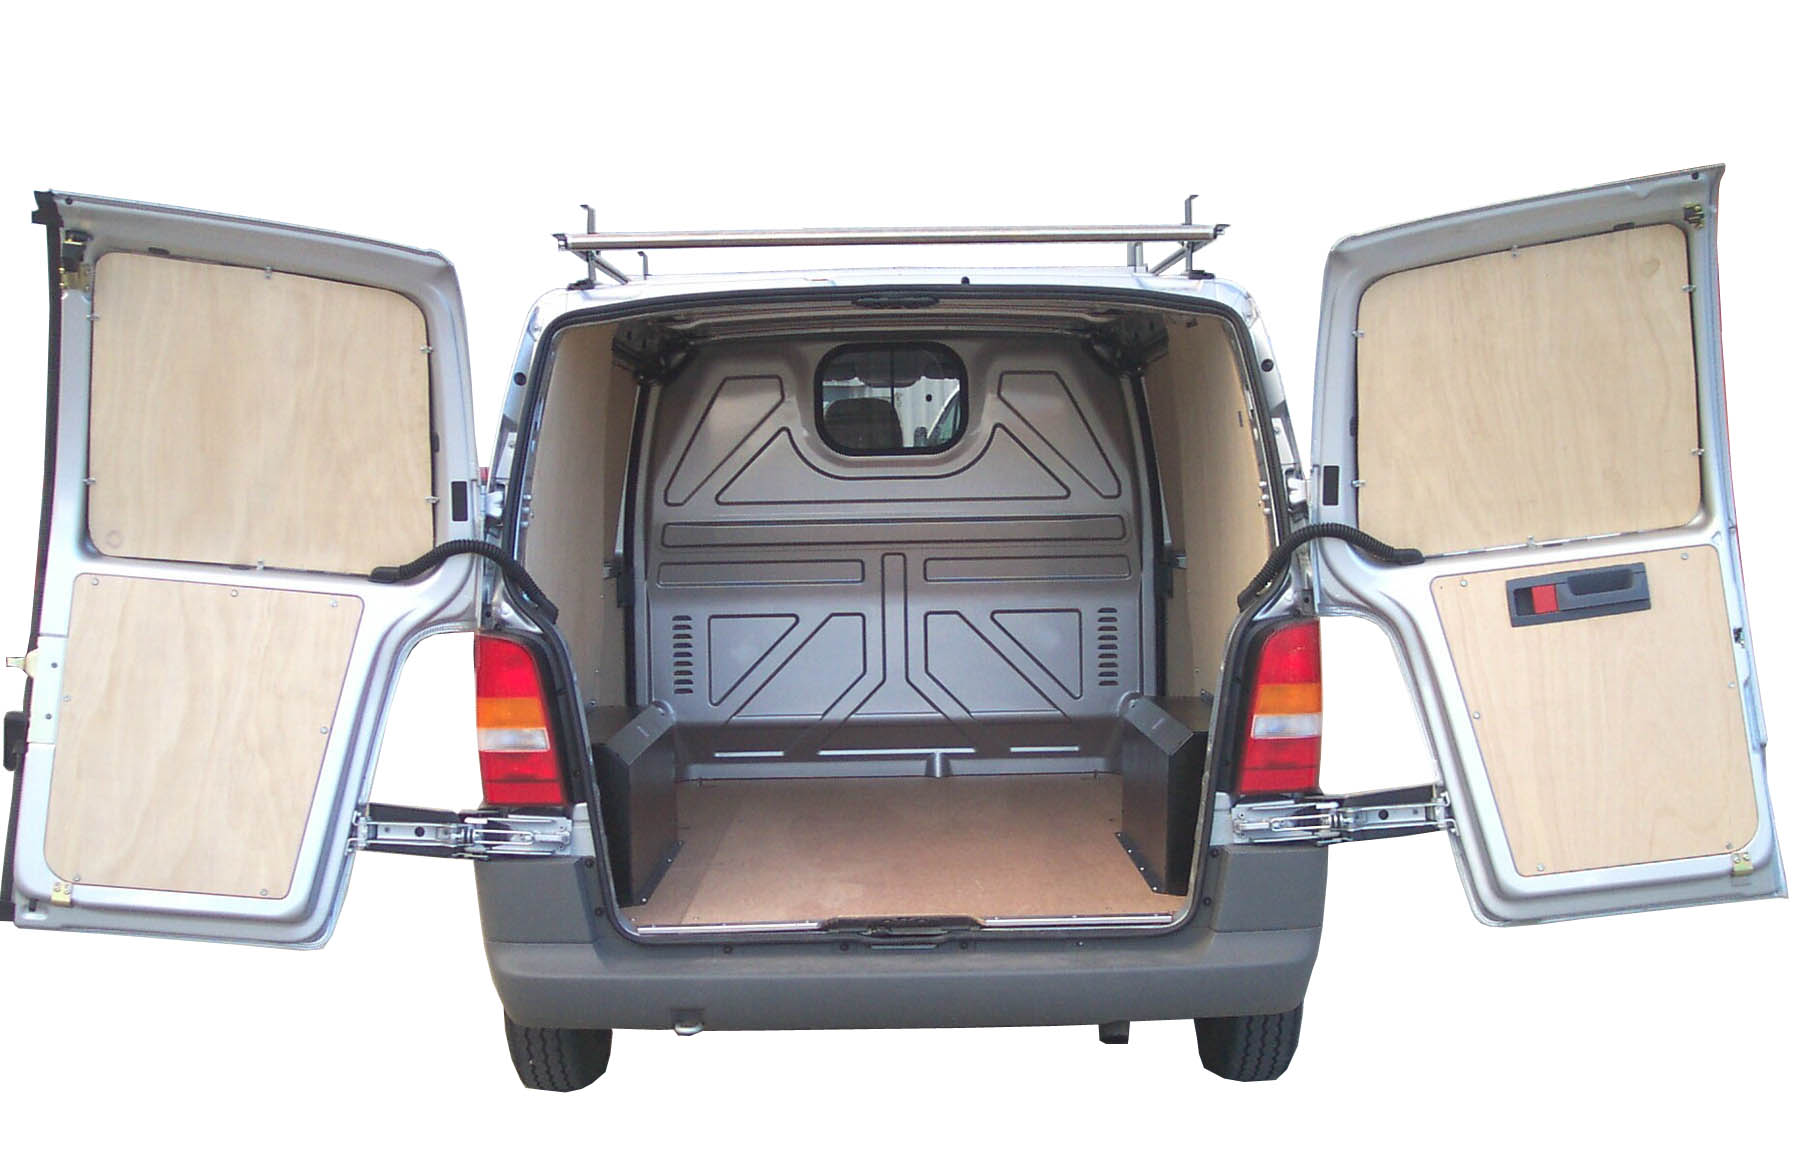 Mercedes Vito Van Ply Lining Kit Pre 2004 Old Style